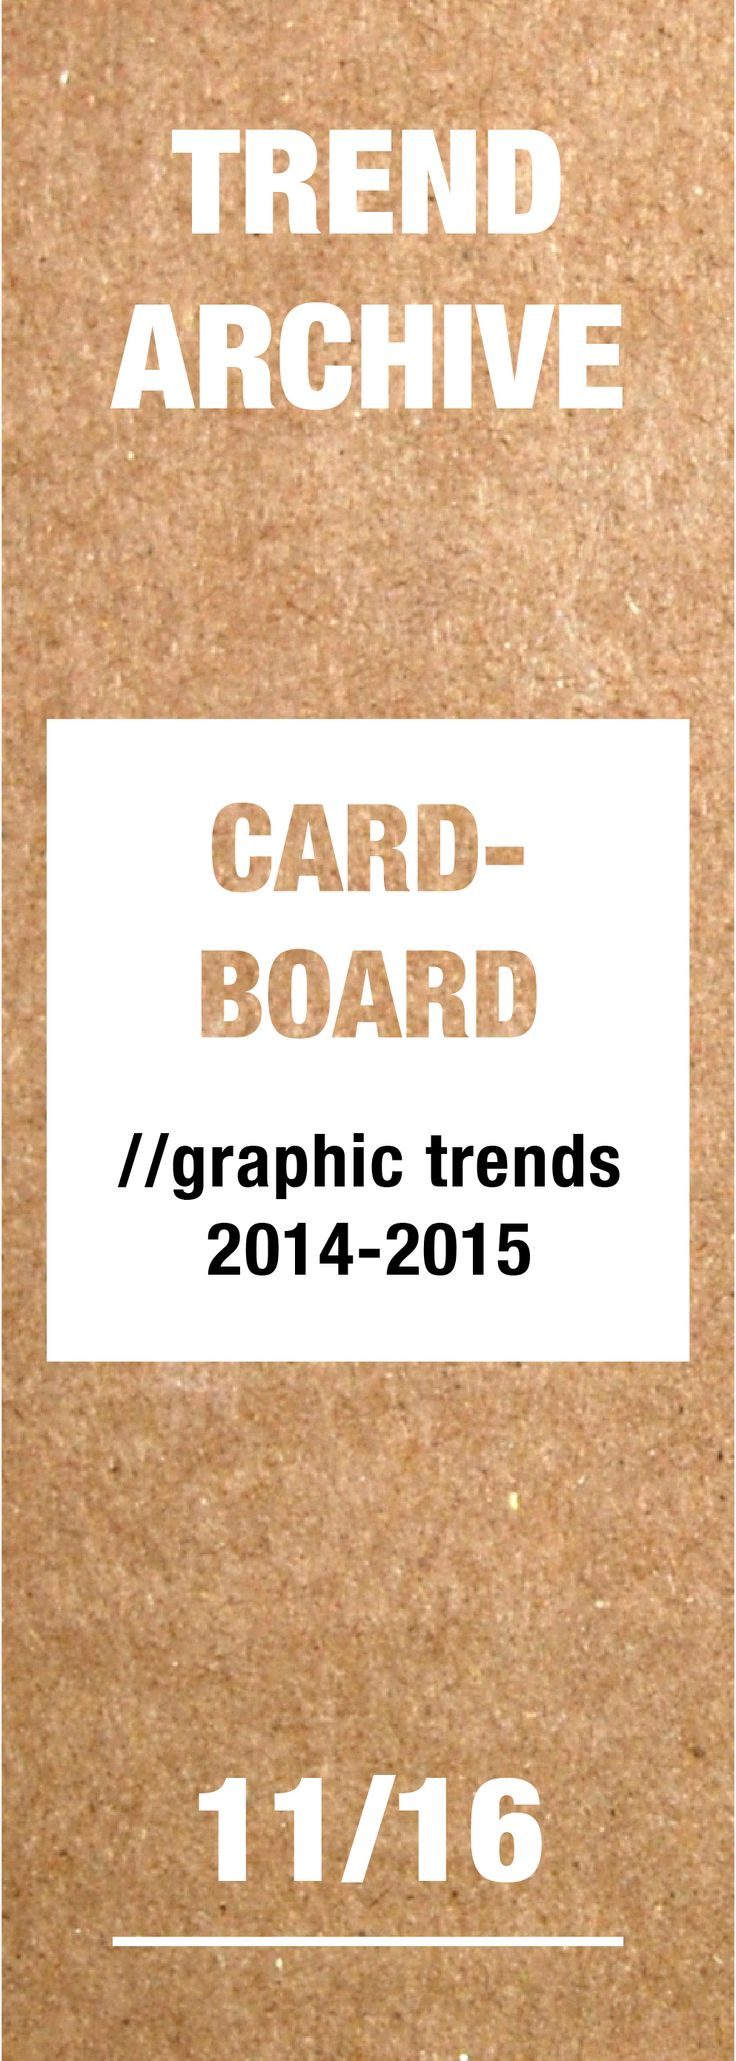 #cardboard #graphicdesigntrends #graphicdesign #design #trends #trendarchive #2014 #2015